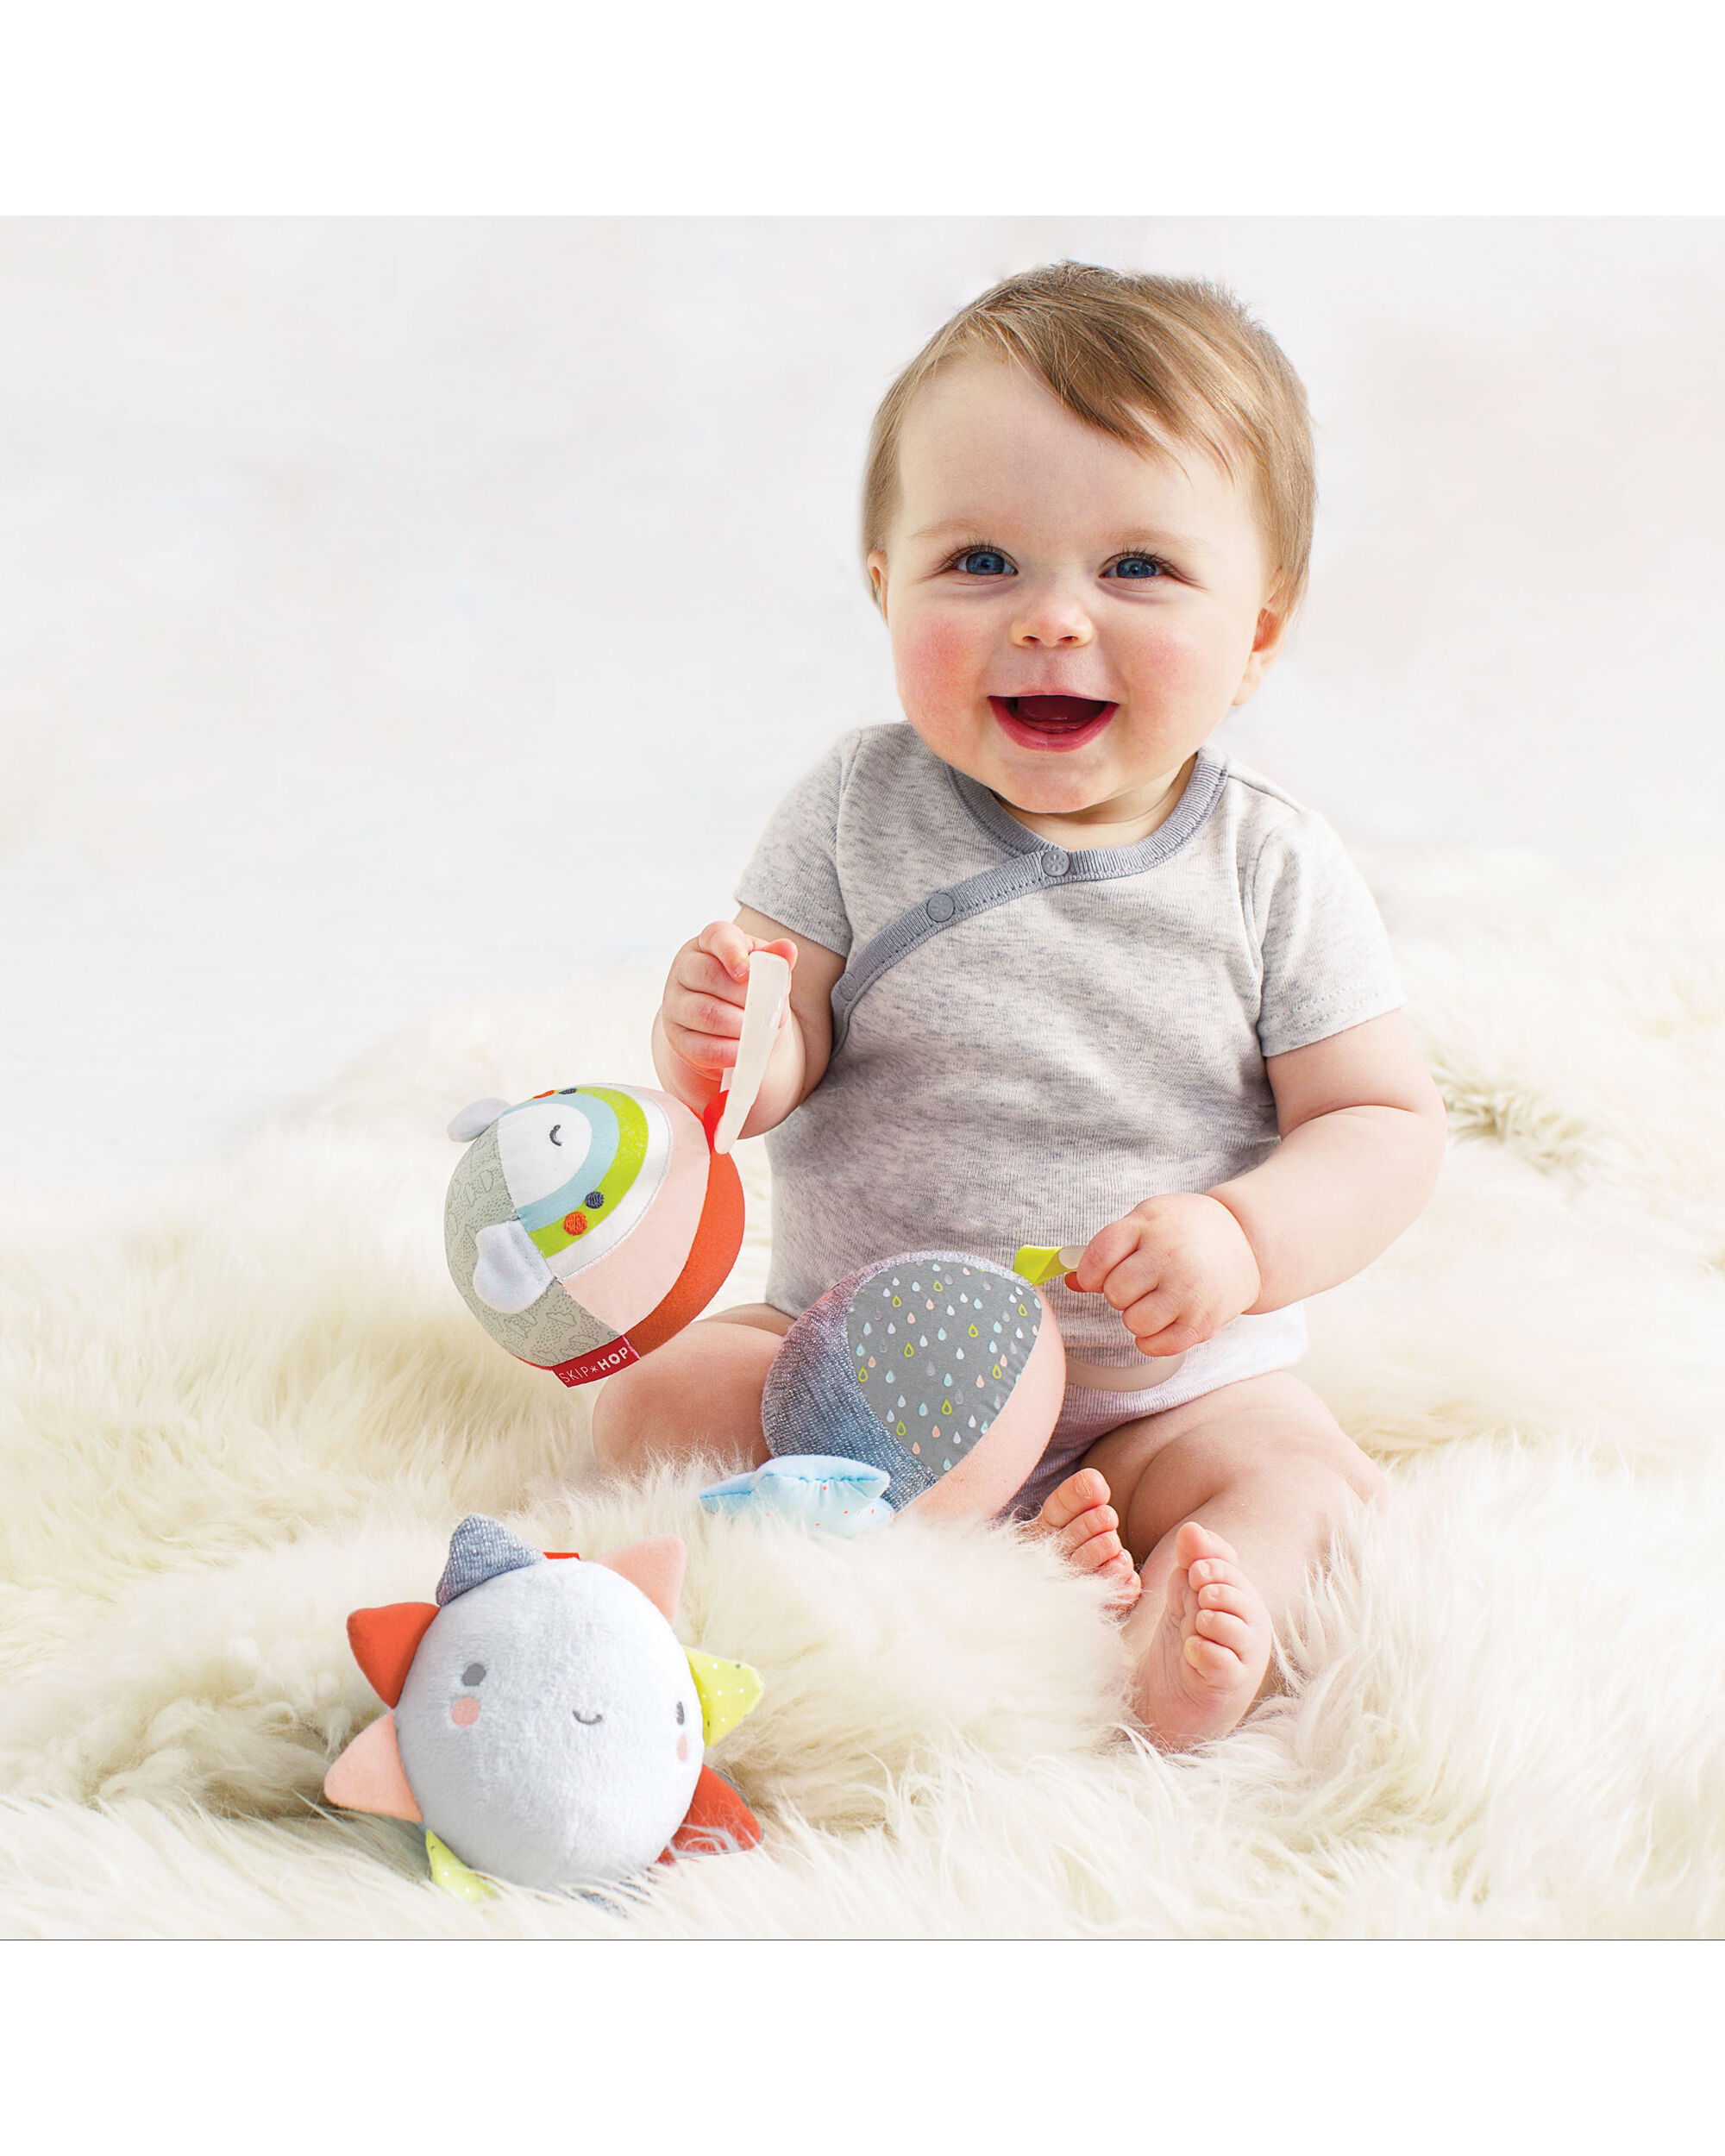 Silver Lining Cloud Ball Trio Baby Toy | Skiphop.com